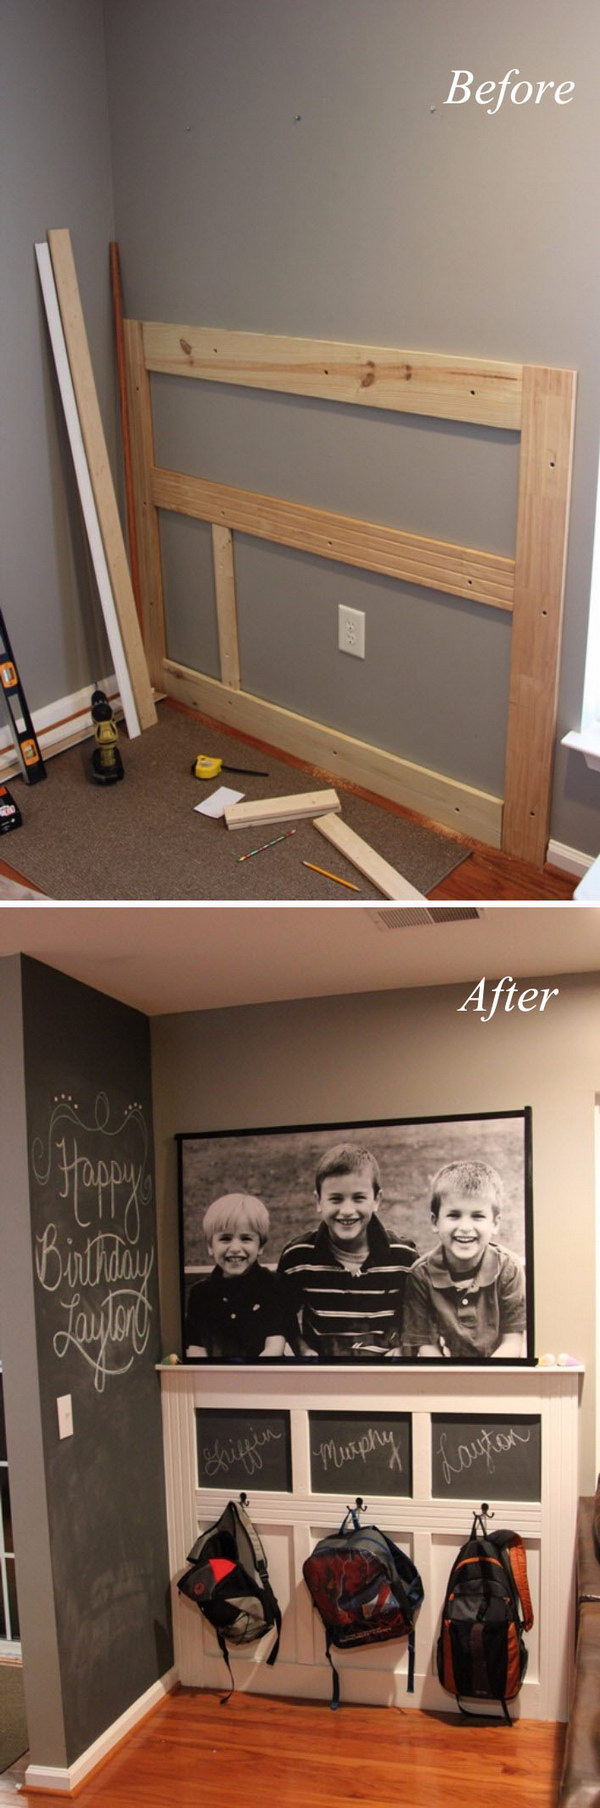 30 Amazing Entryway Makeover Ideas And Tutorials Hative